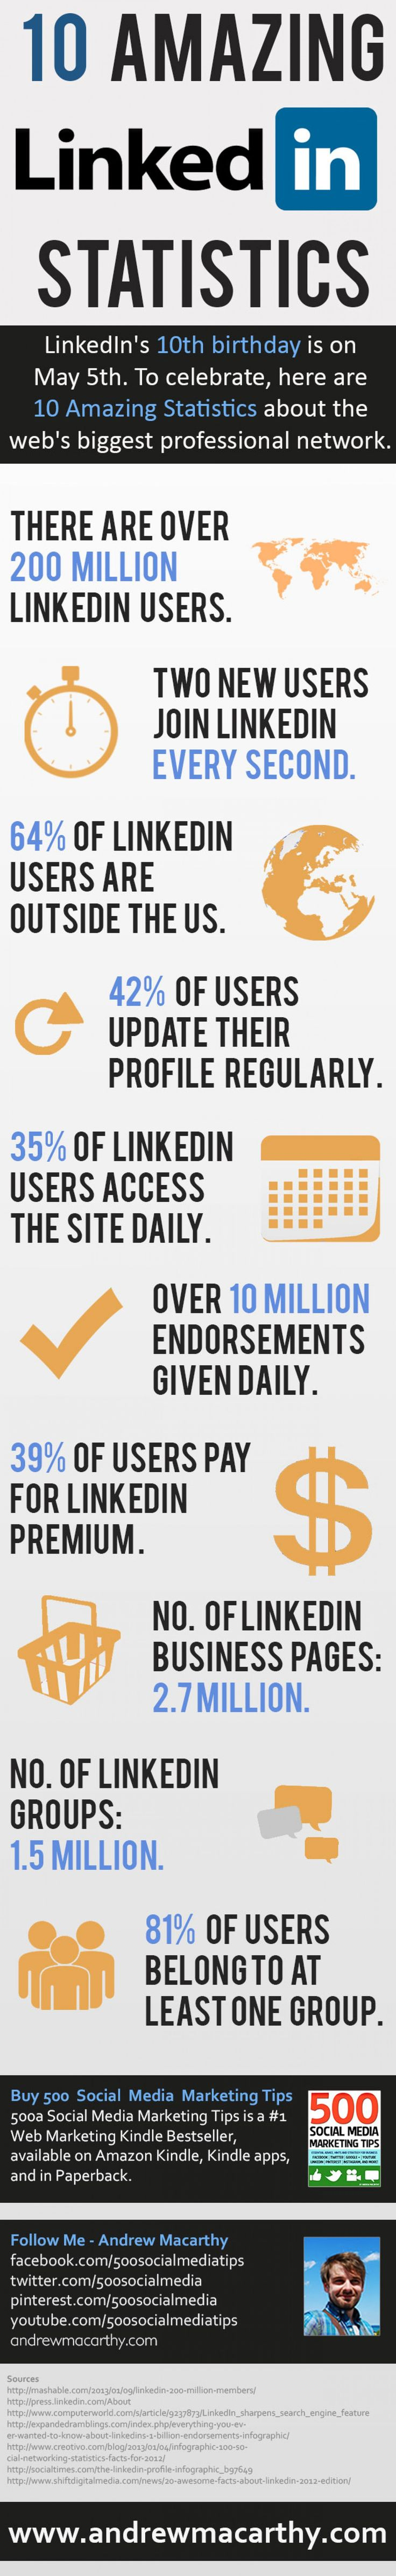 "LinkedIn is a business-centered social networking site that allows members to make connections to other business professionals.  This info graphic, ""10 Amazing LinkedIn Statistics for 2013,"" provides some great statistics about LinkedIn!  It really shows just how big LinkedIn has become and how many people it reaches.  By: Ariel L."